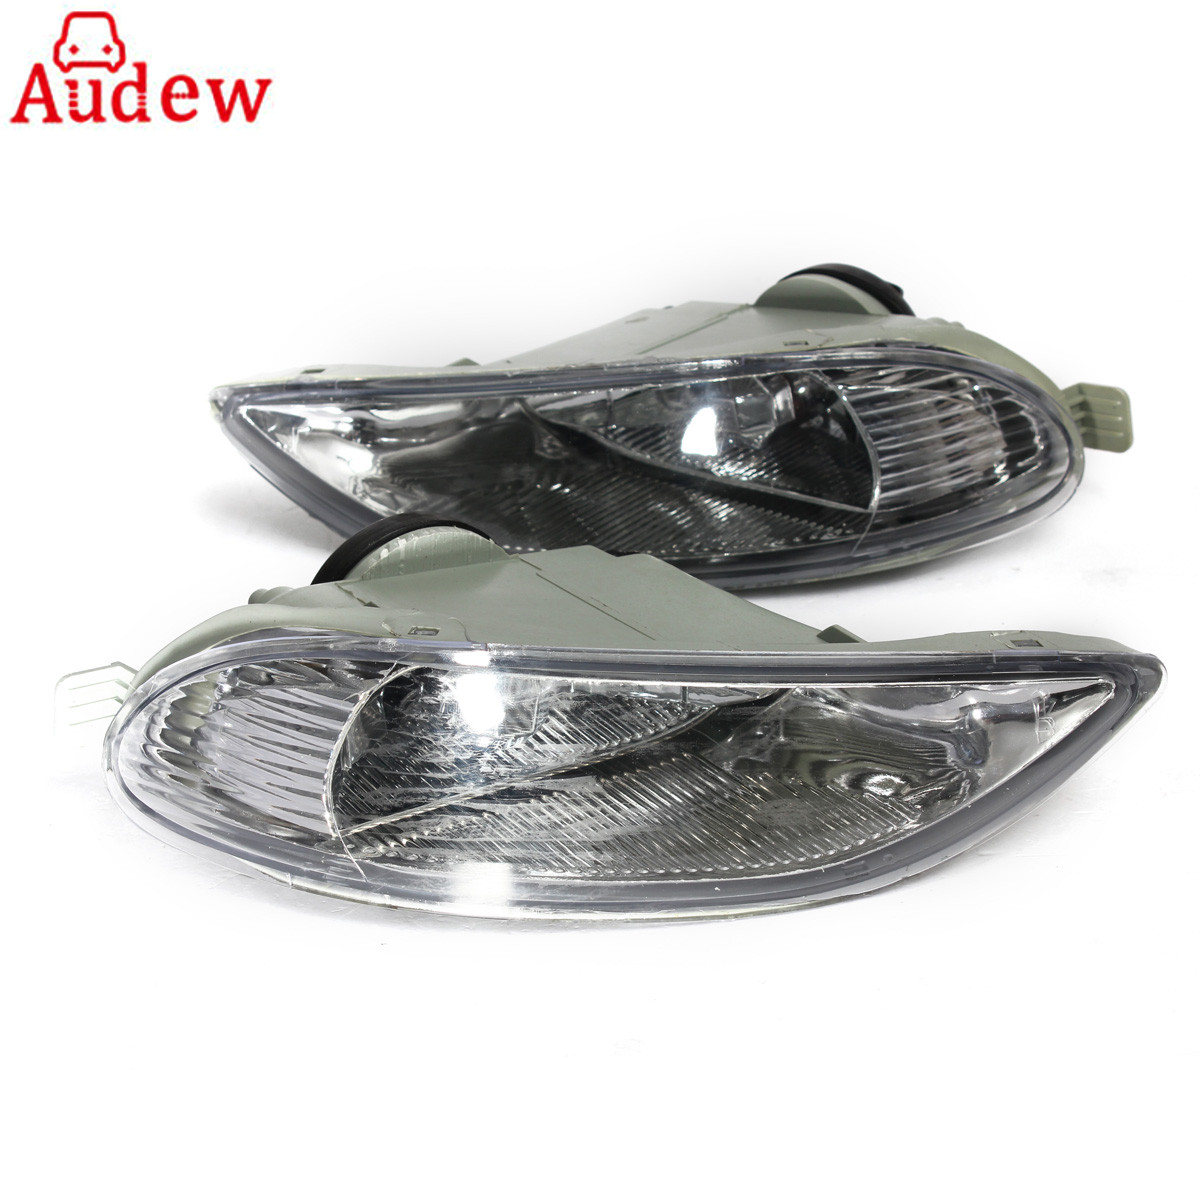 1Pair Left & Right Car Bumper Fog Lights Front Lamps With Fog Light Bulbs For Toyota Corolla/Camry 2 pcs set car styling front bumper light fog lamps for toyota venza 2009 10 11 12 13 14 81210 06052 left right